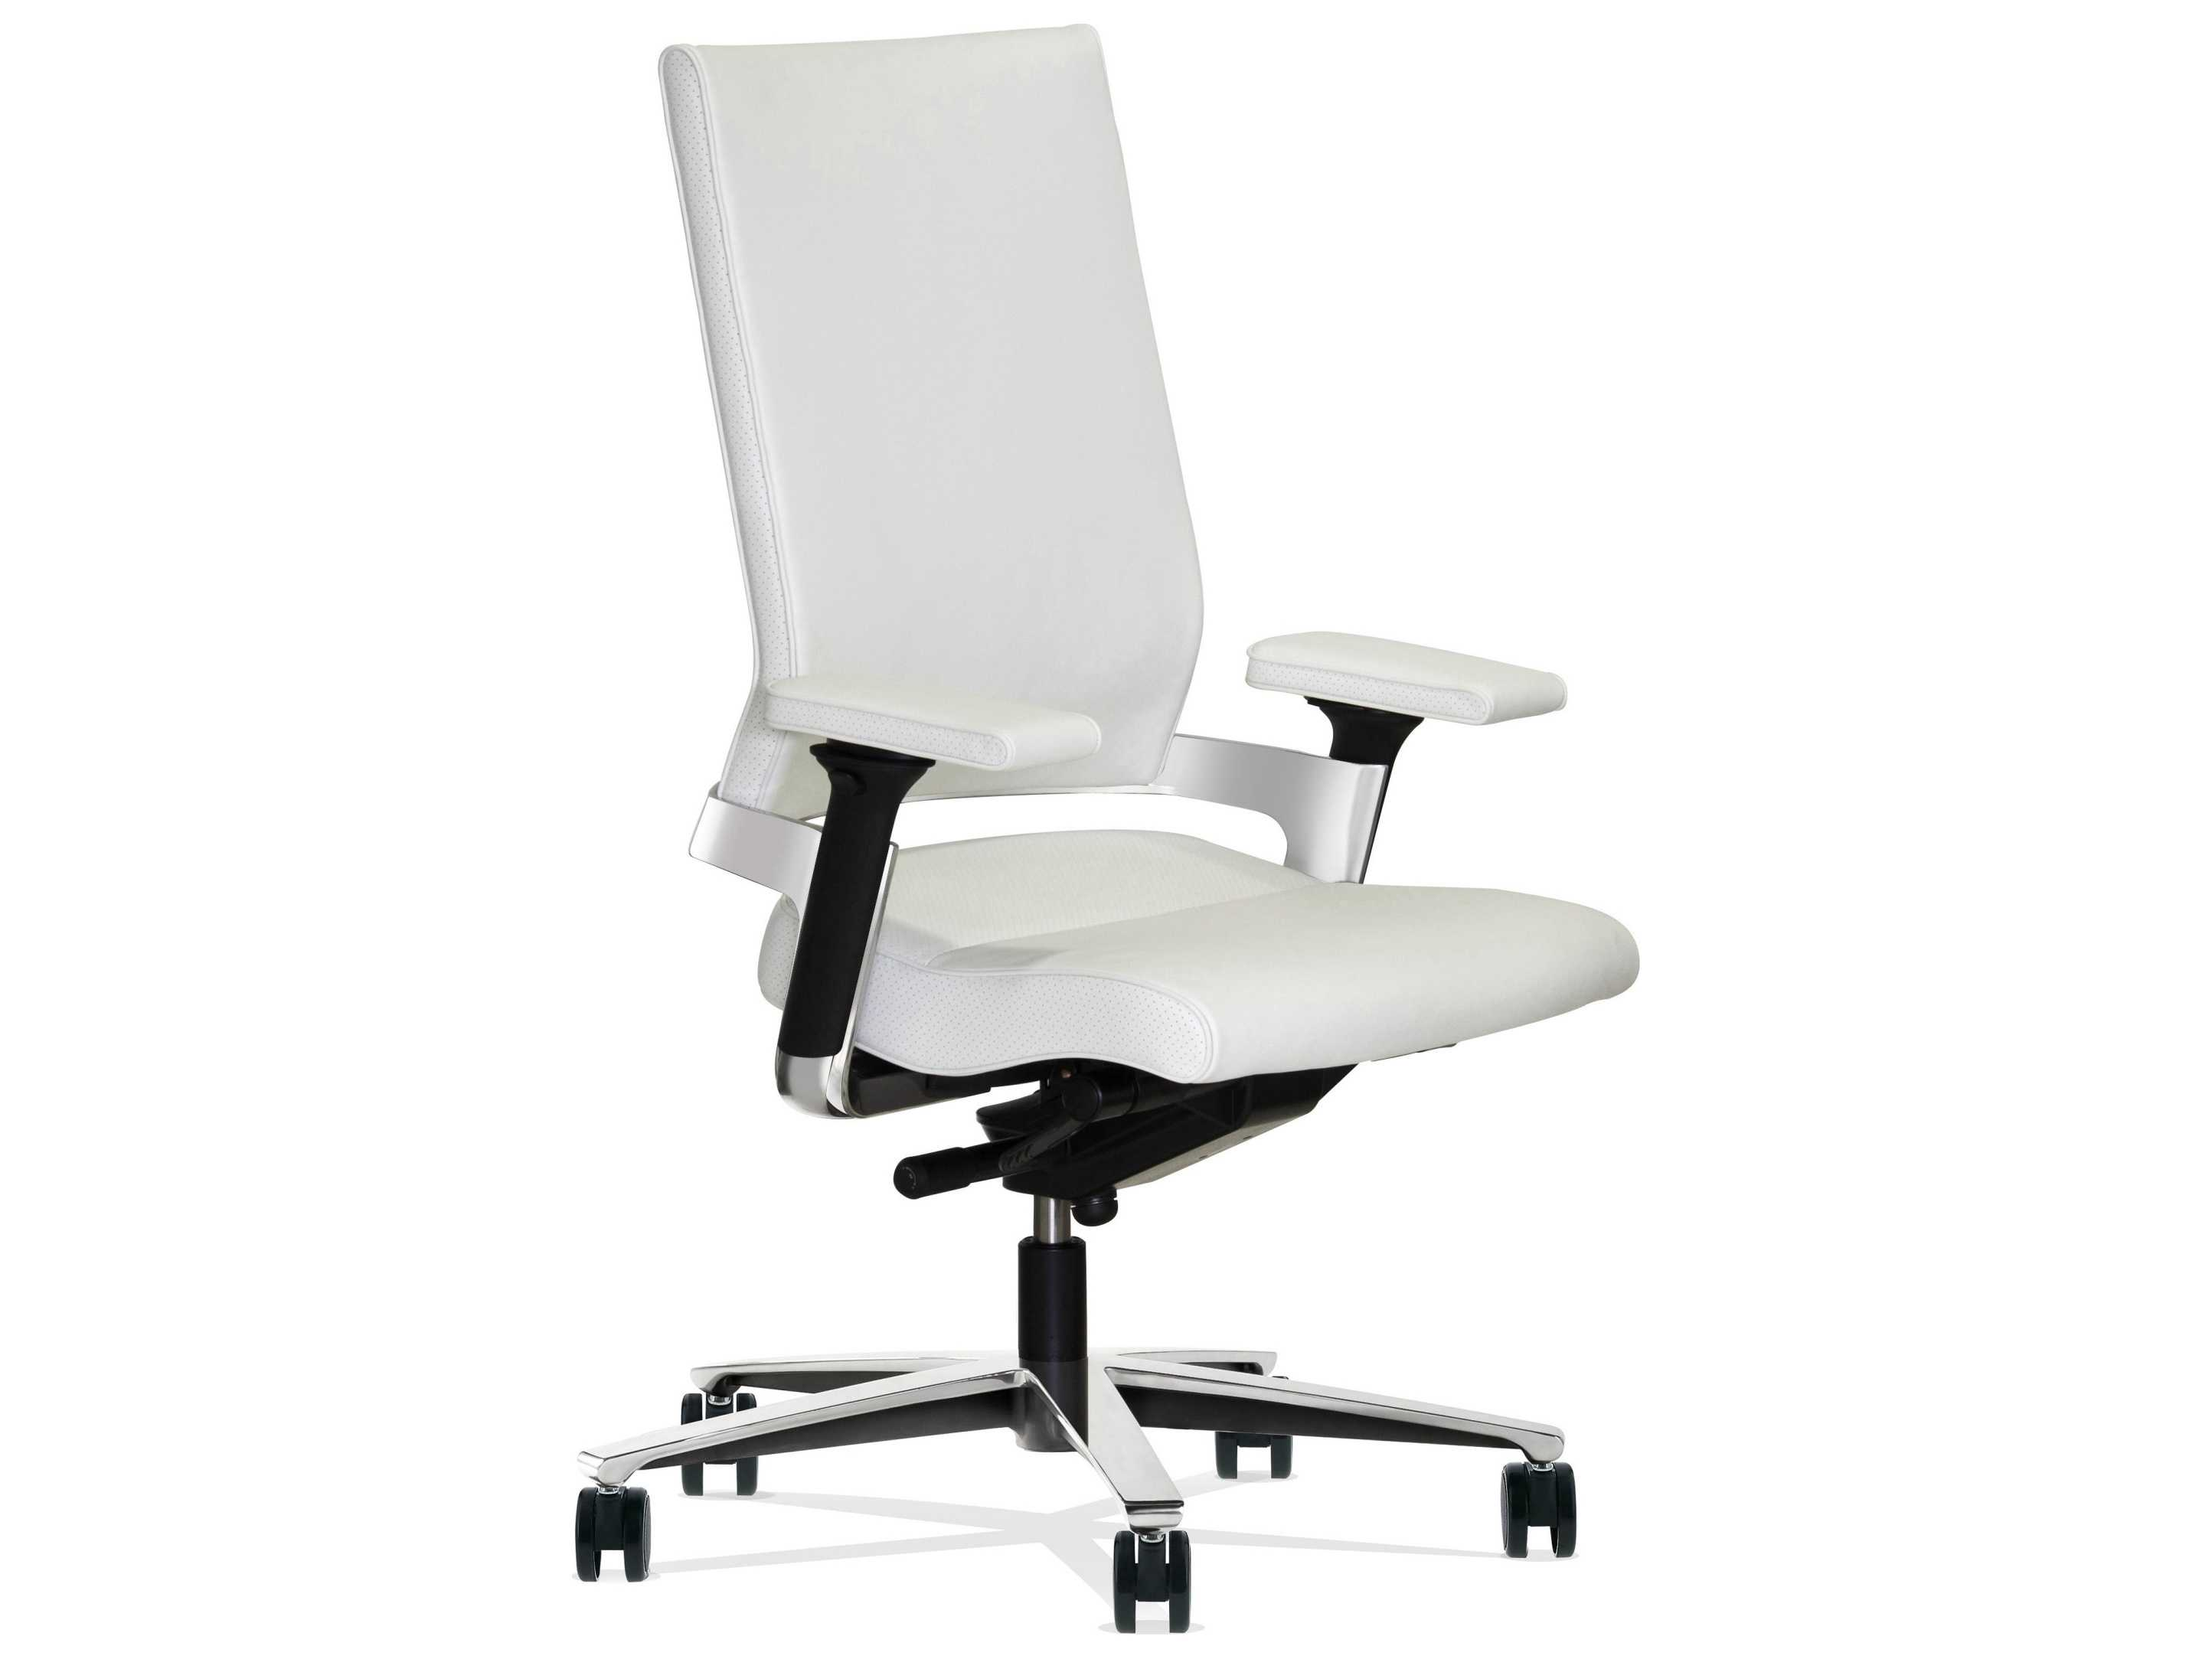 ergonomic chair description cover rentals tallahassee fl dauphin lacinta executive mid back daulc1020